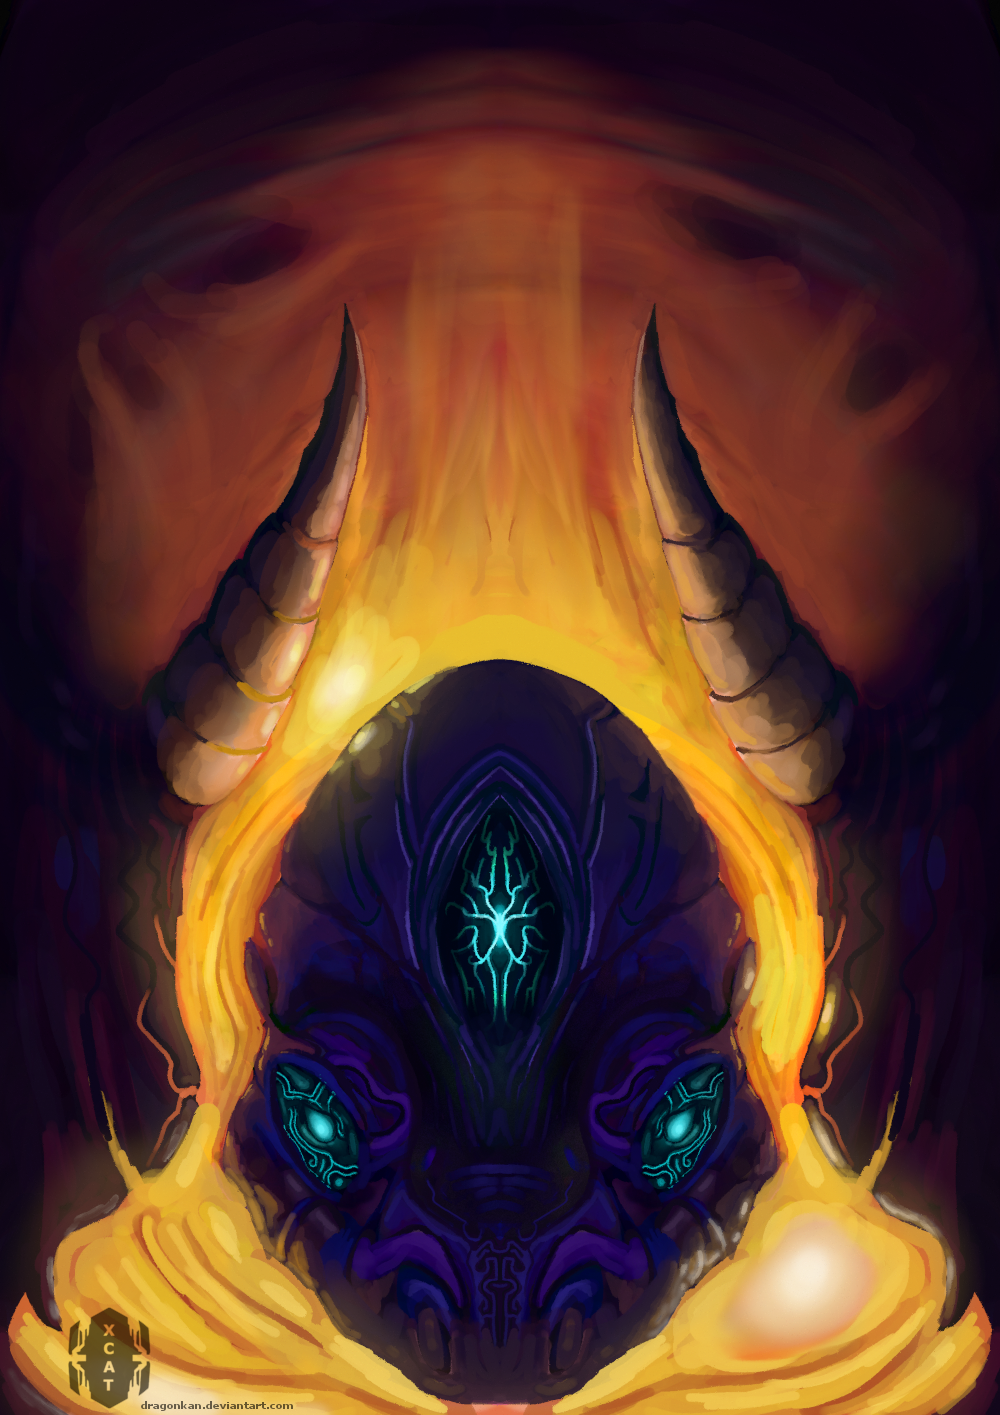 fire mind by dragonkan